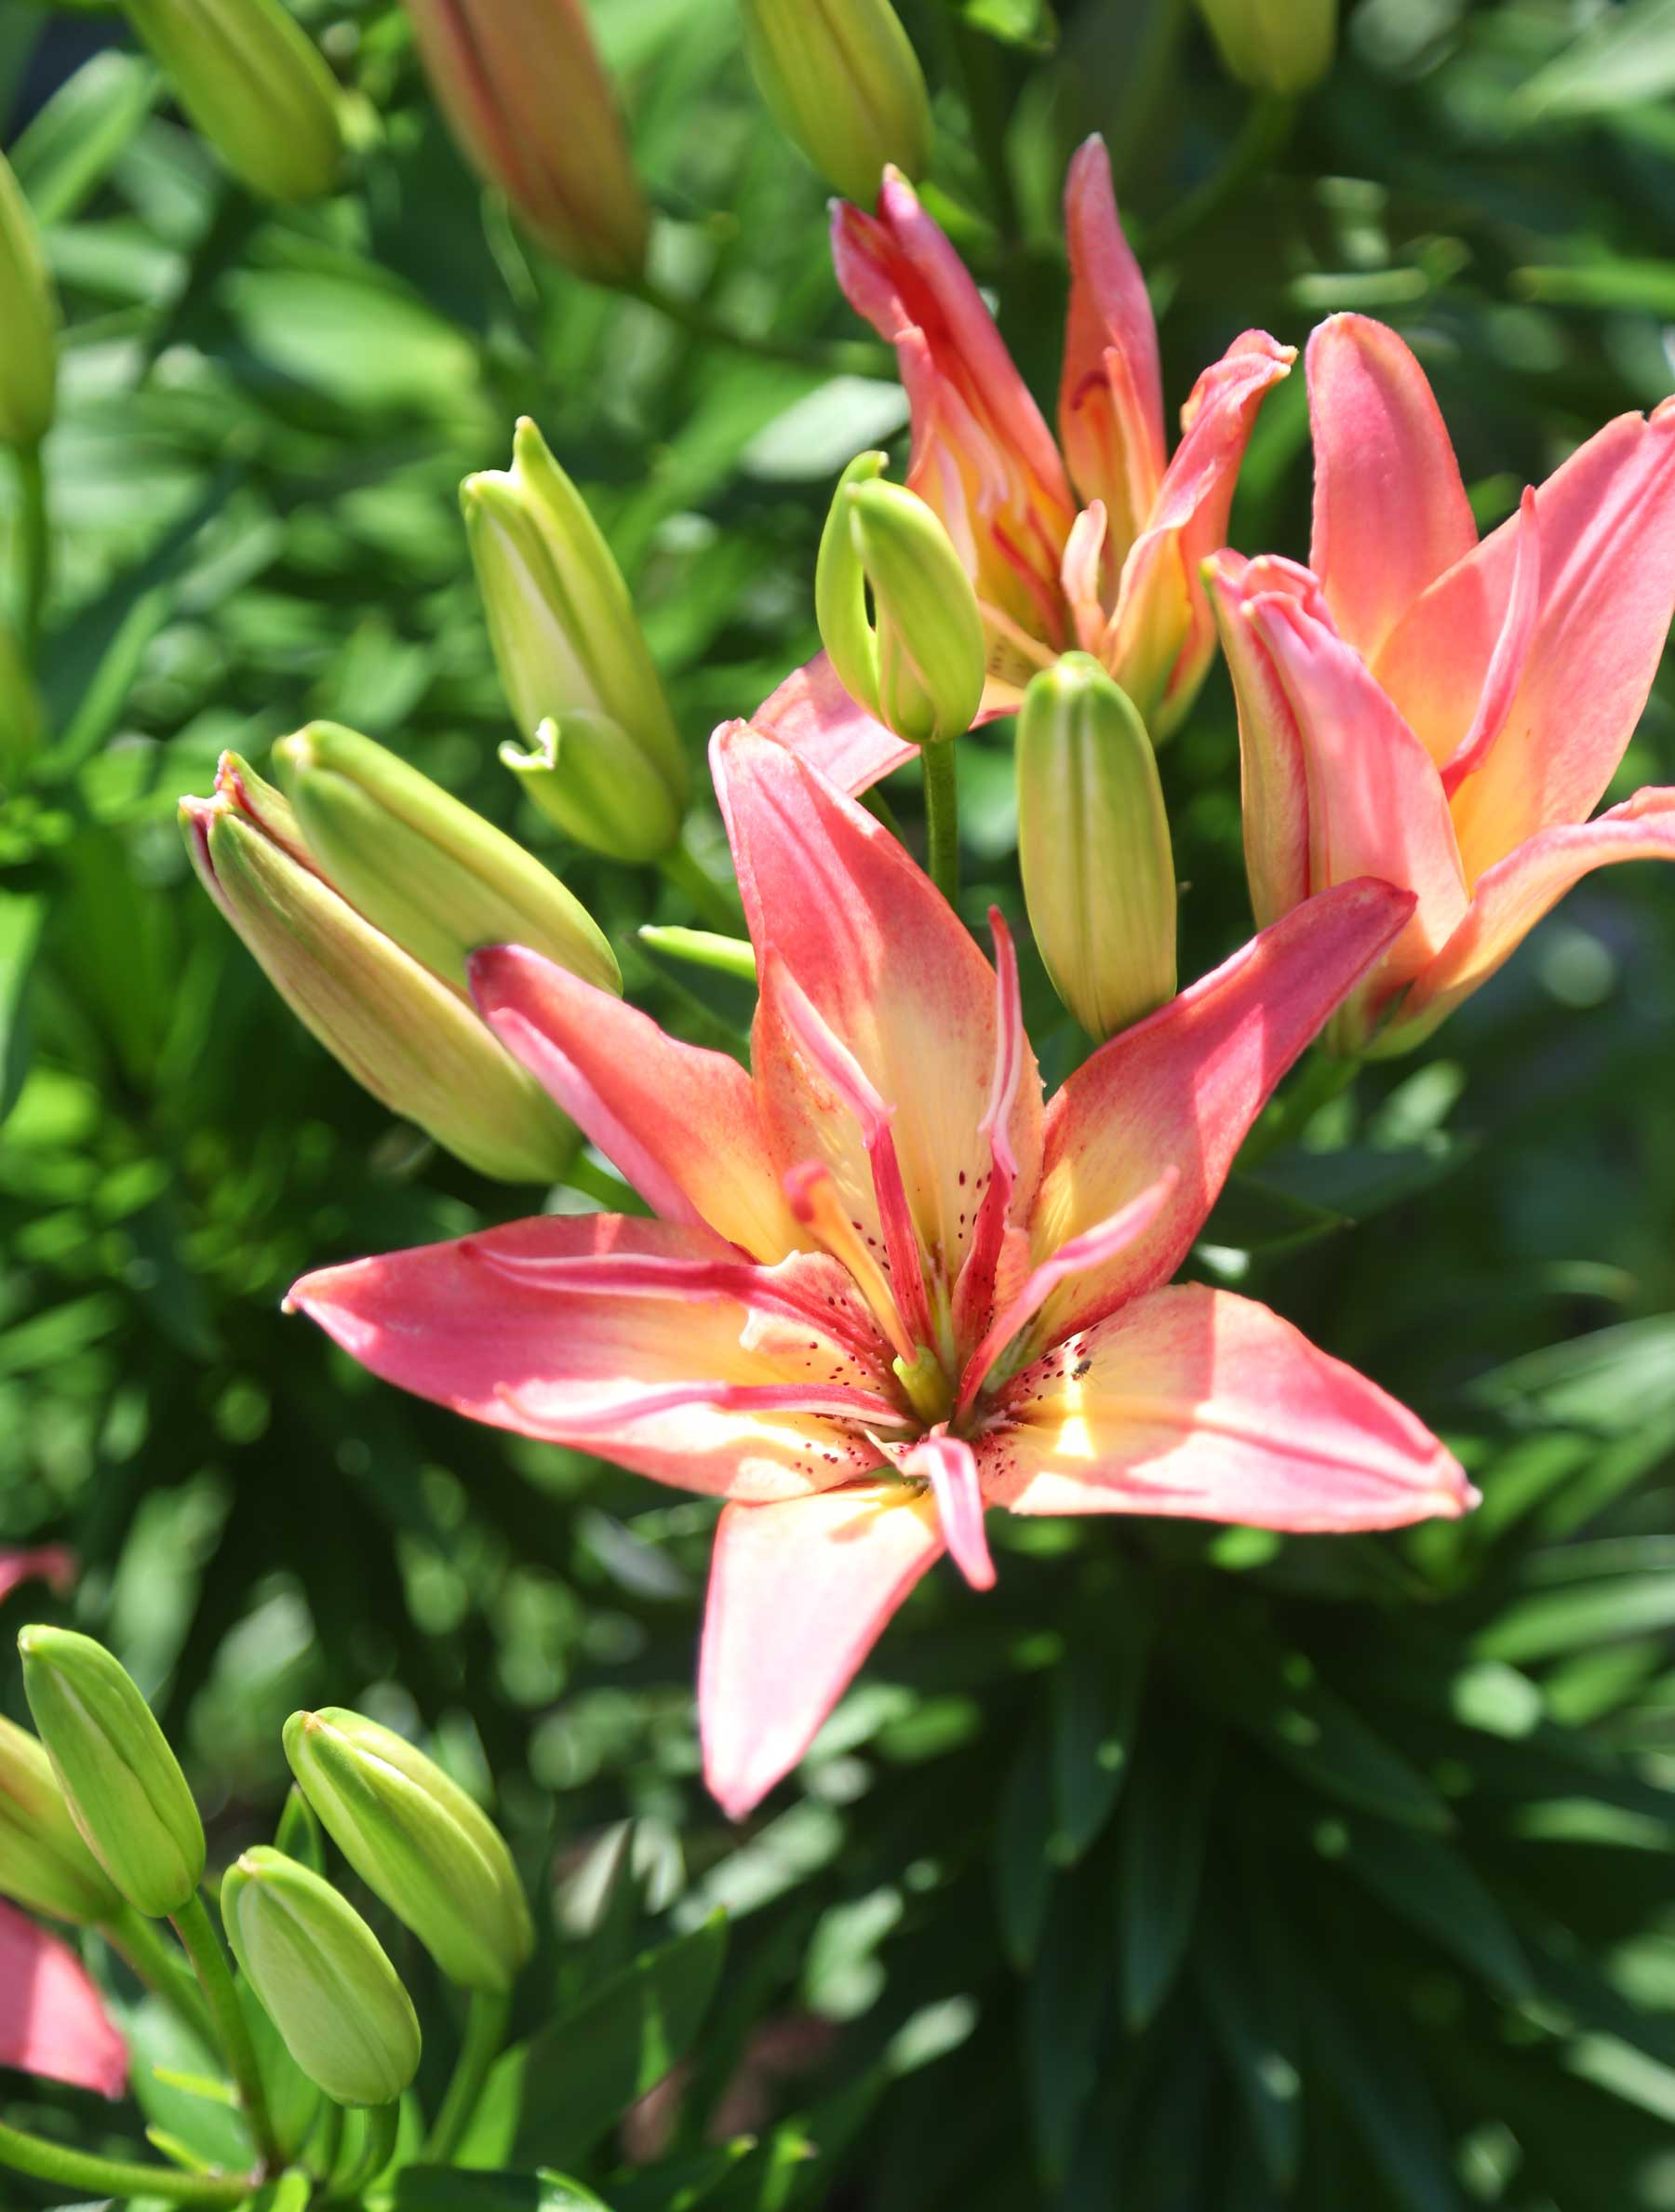 8 tips for growing better lilies longfield gardens 8 tips for growing better lilieslongfield gardens izmirmasajfo